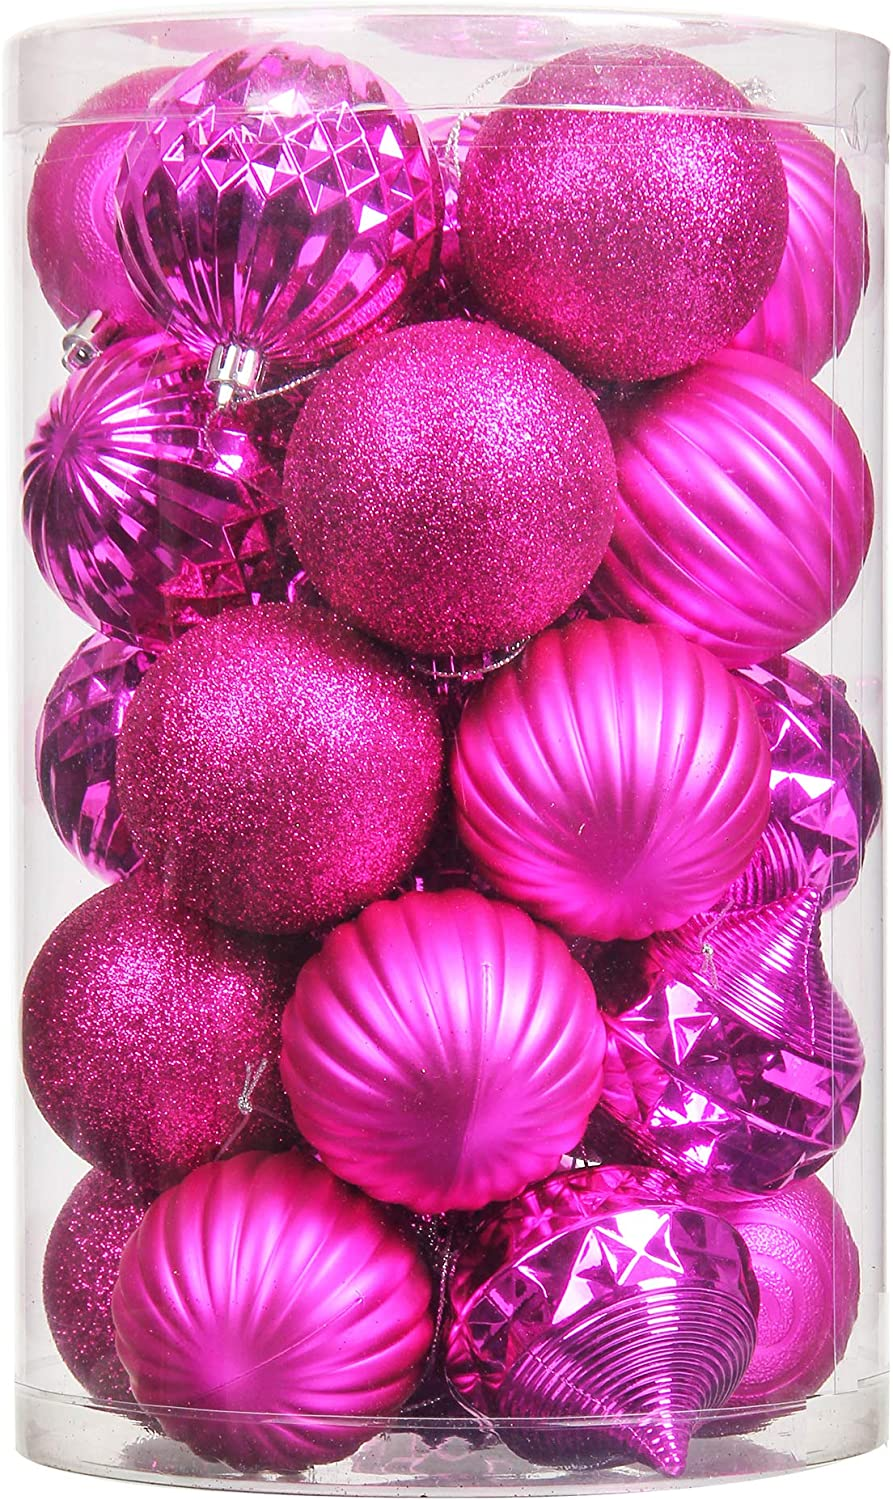 Costyleen Christmas Decoration Balls Ornaments Set Festival Home Party Decors Xmas Tree Hanging Decorative Baubles 31pc Hot Pink 1.97in/2.75in